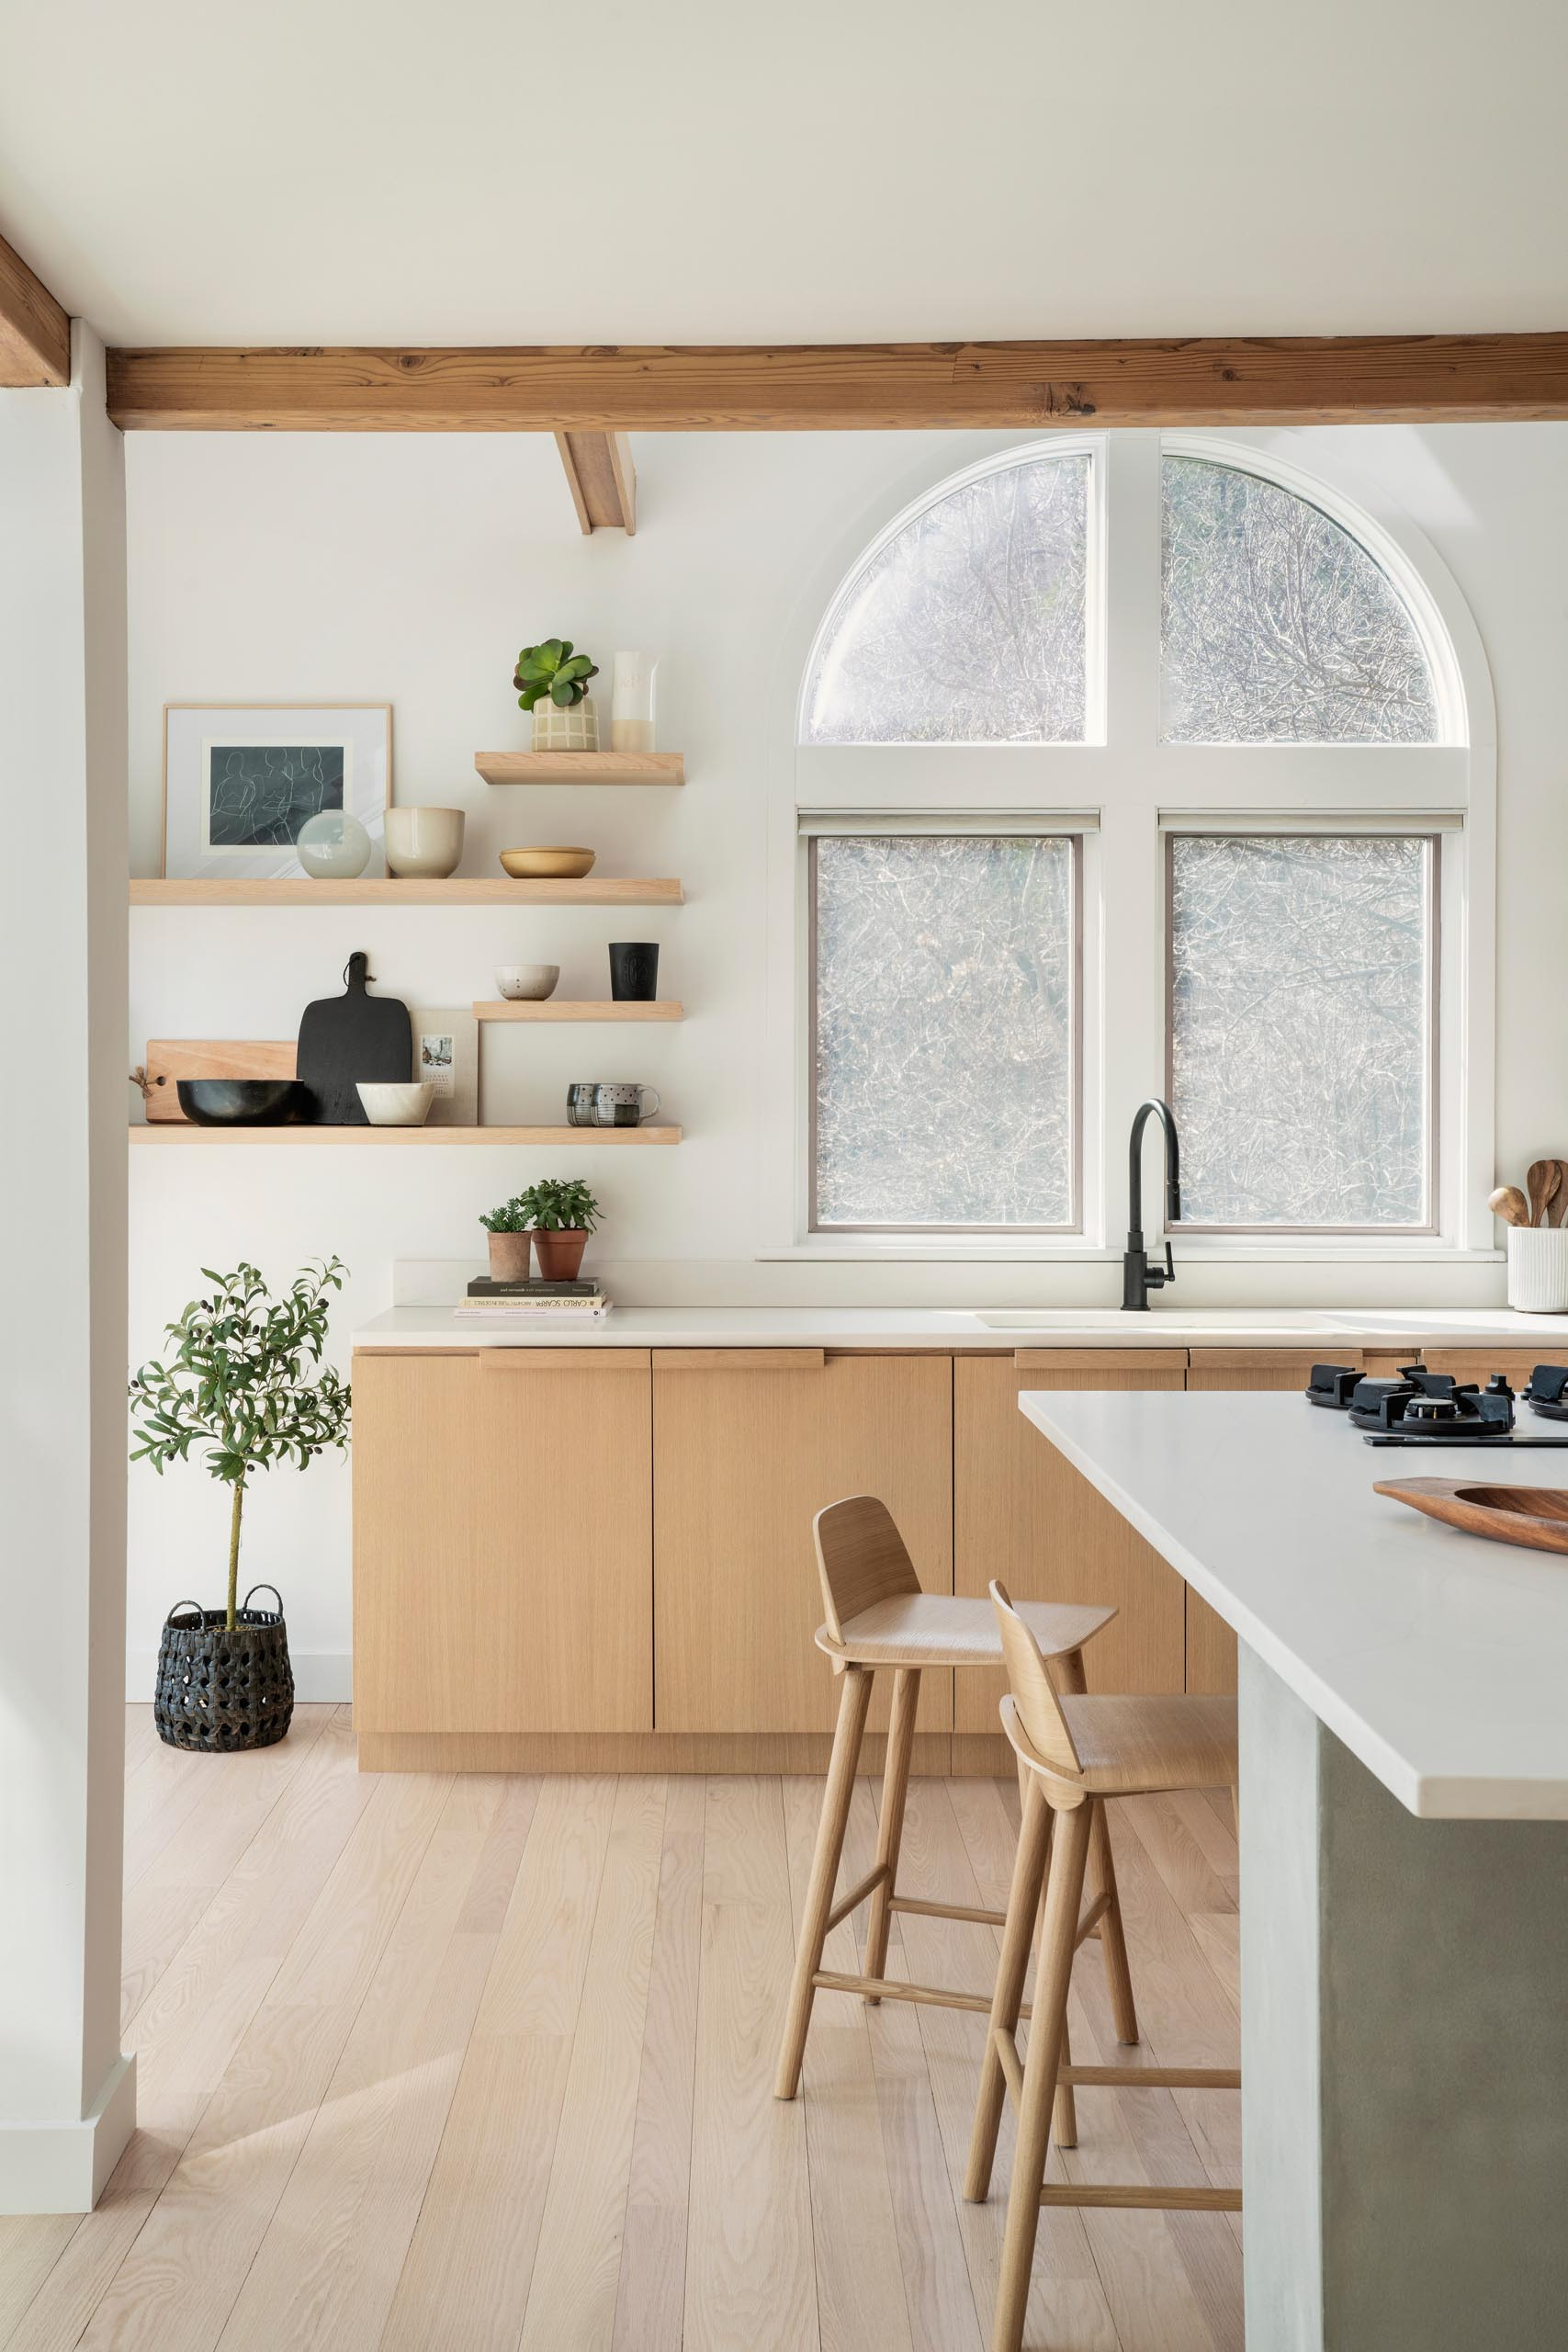 A remodeled kitchen with water-based white rift oak for the cabinets, open shelving, a large island, and quartz countertops.